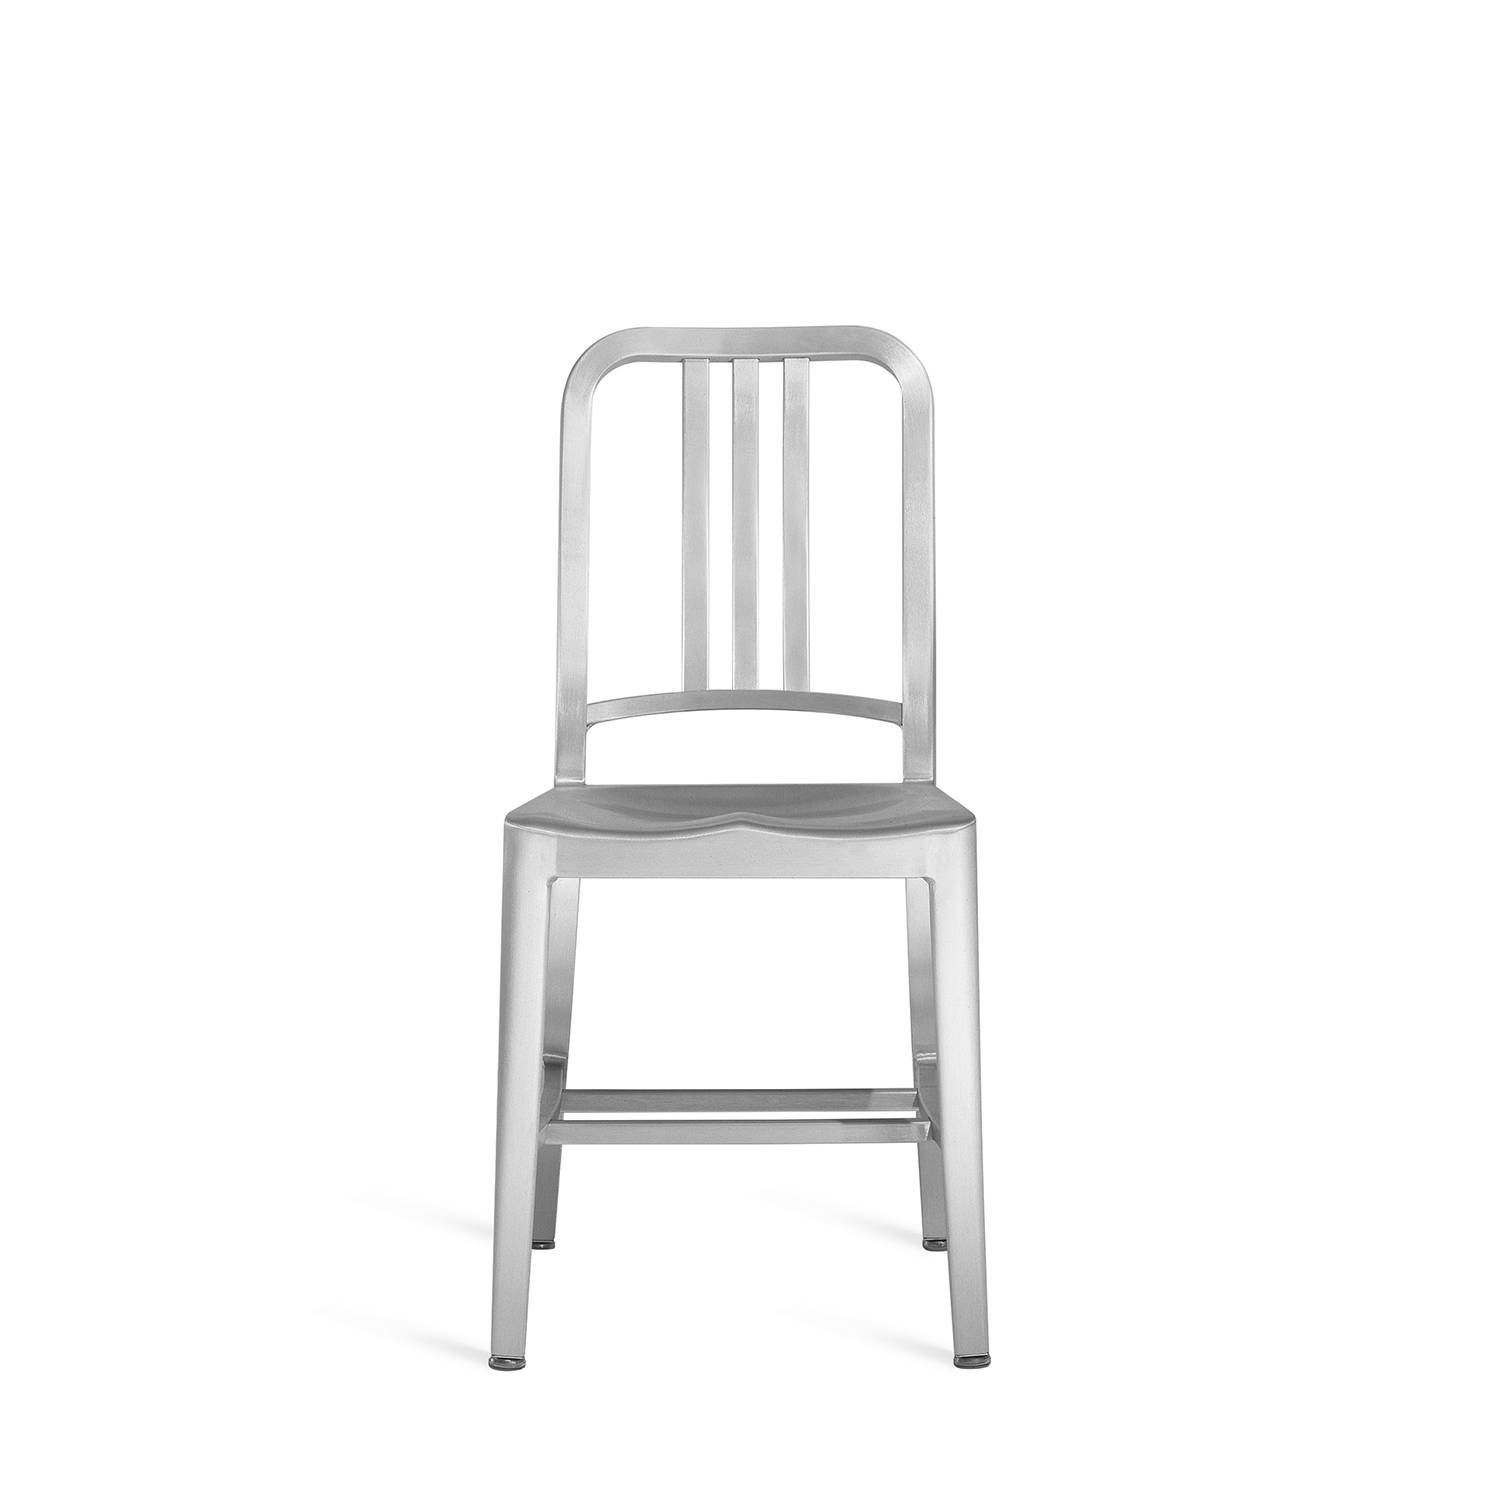 1006-navy-chair-2